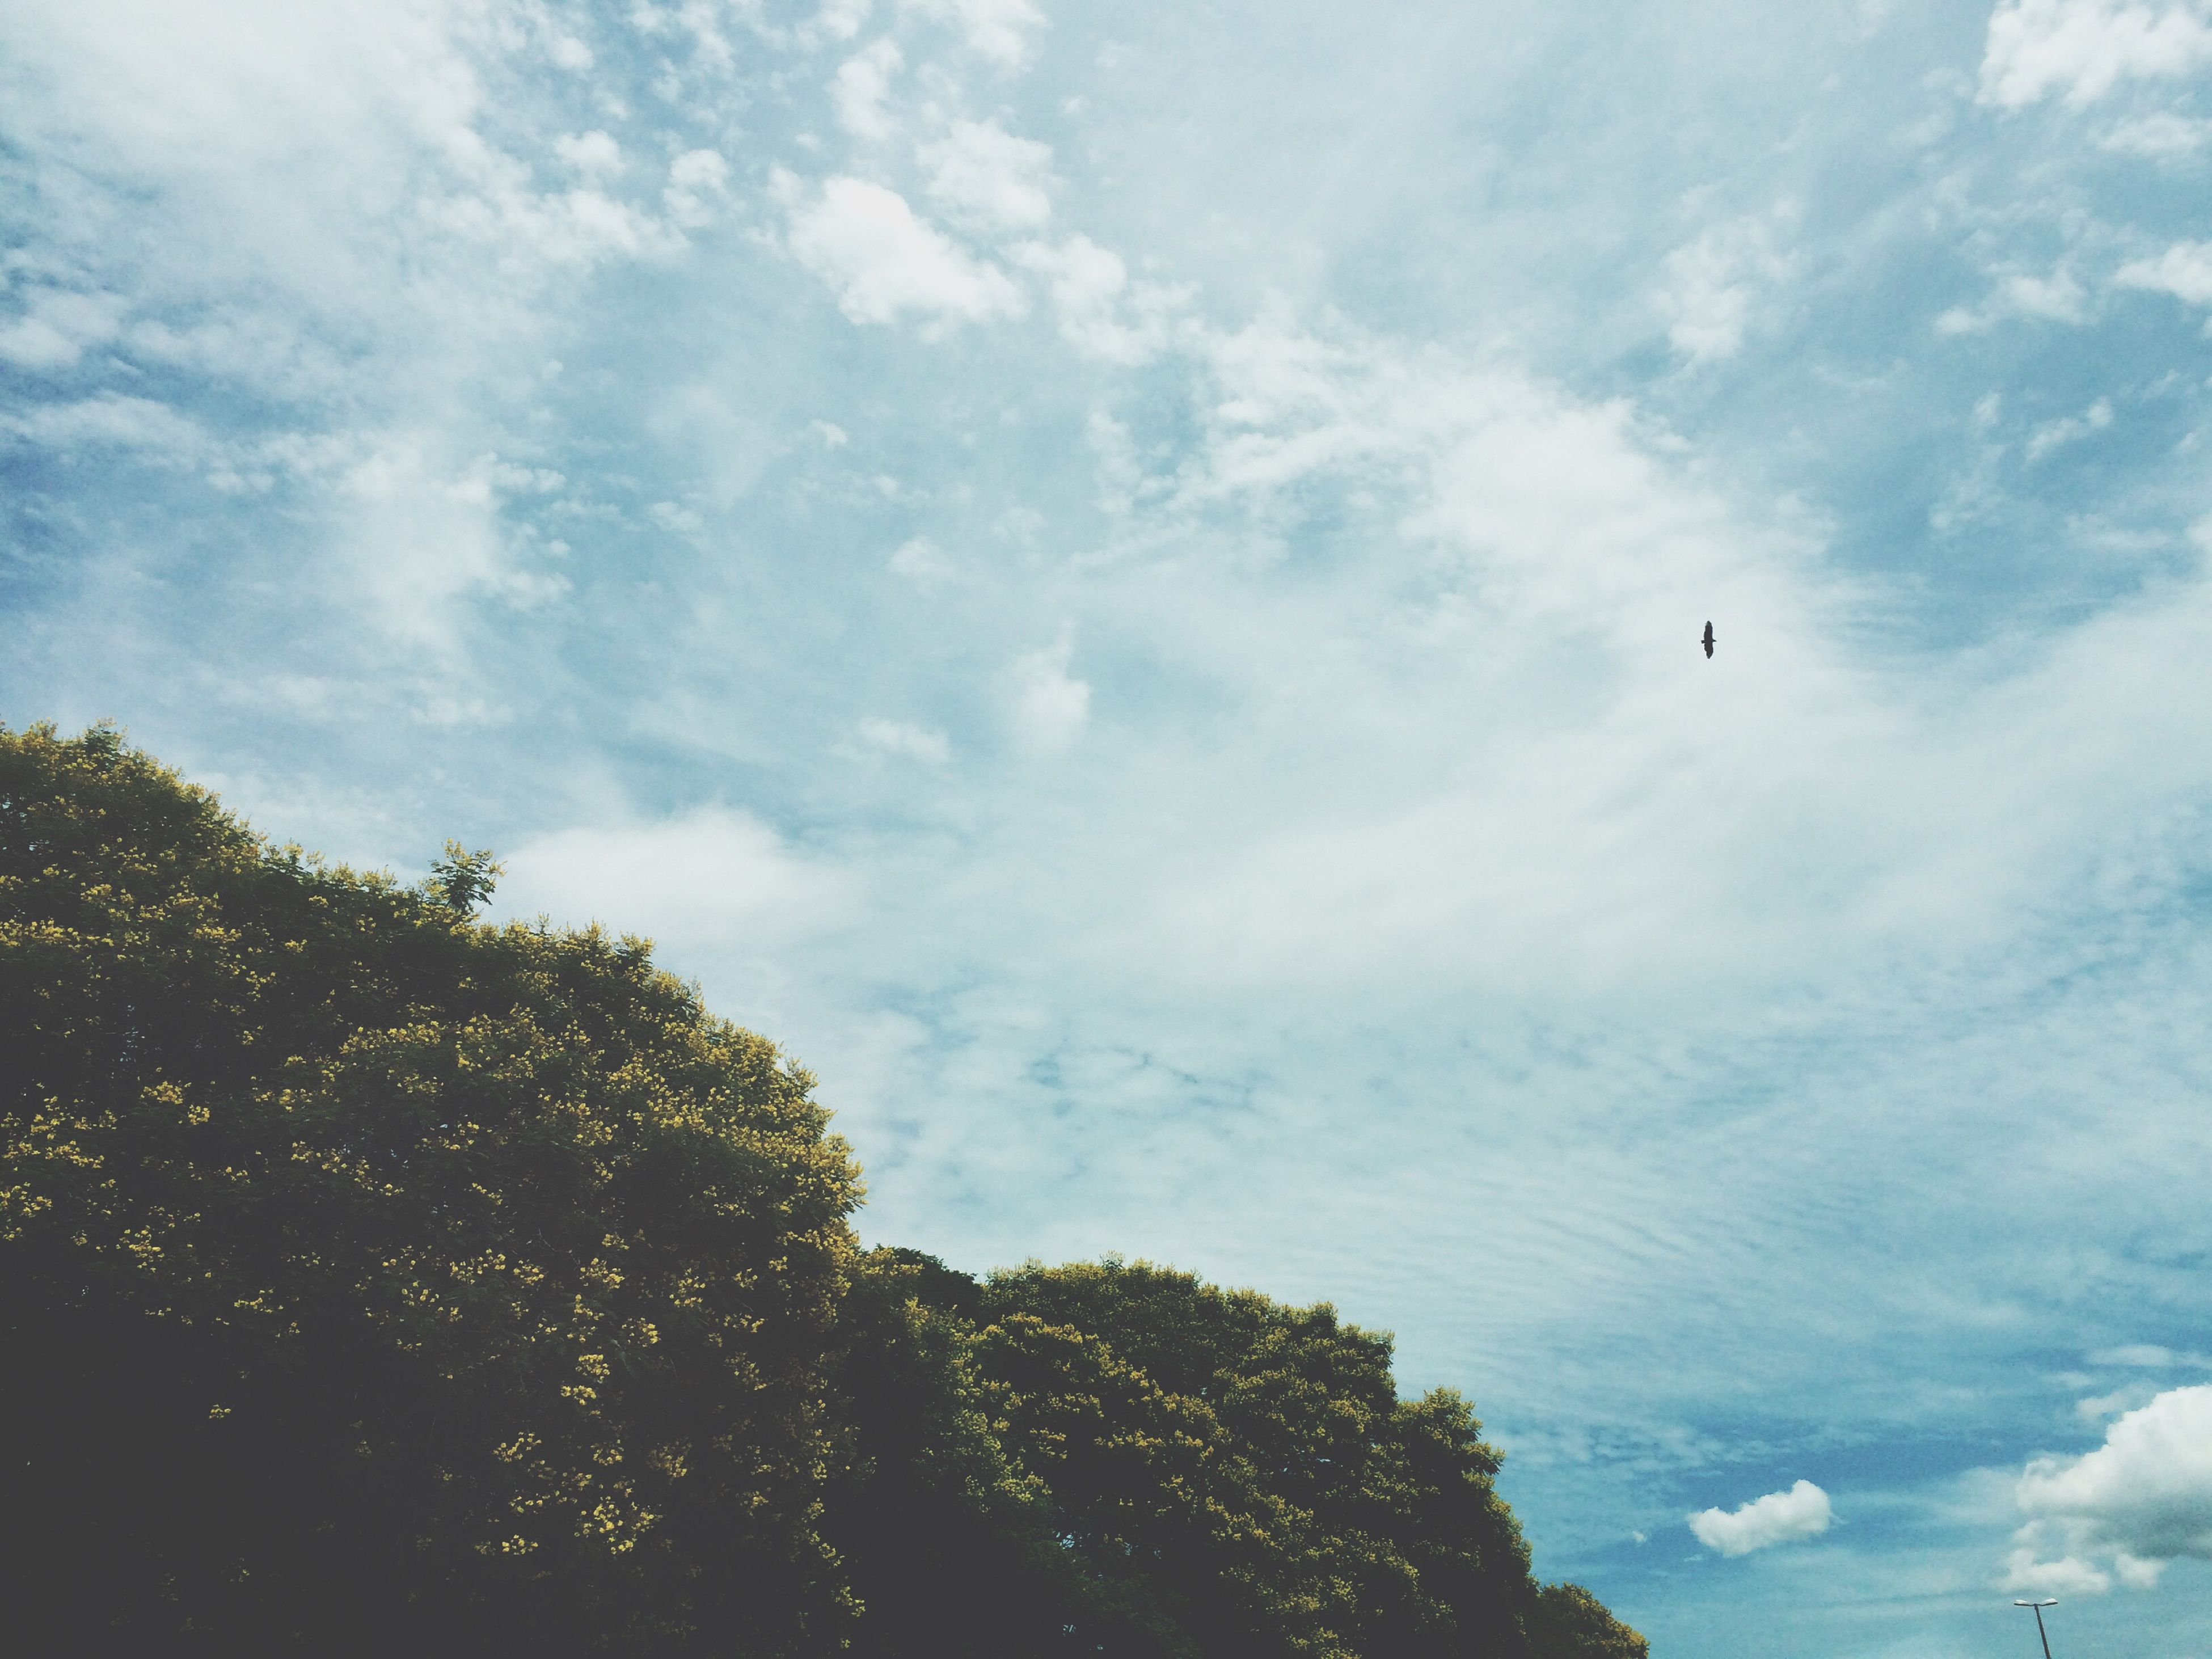 low angle view, sky, tree, cloud - sky, flying, nature, beauty in nature, growth, cloud, bird, animal themes, tranquility, cloudy, blue, day, outdoors, high section, scenics, silhouette, no people